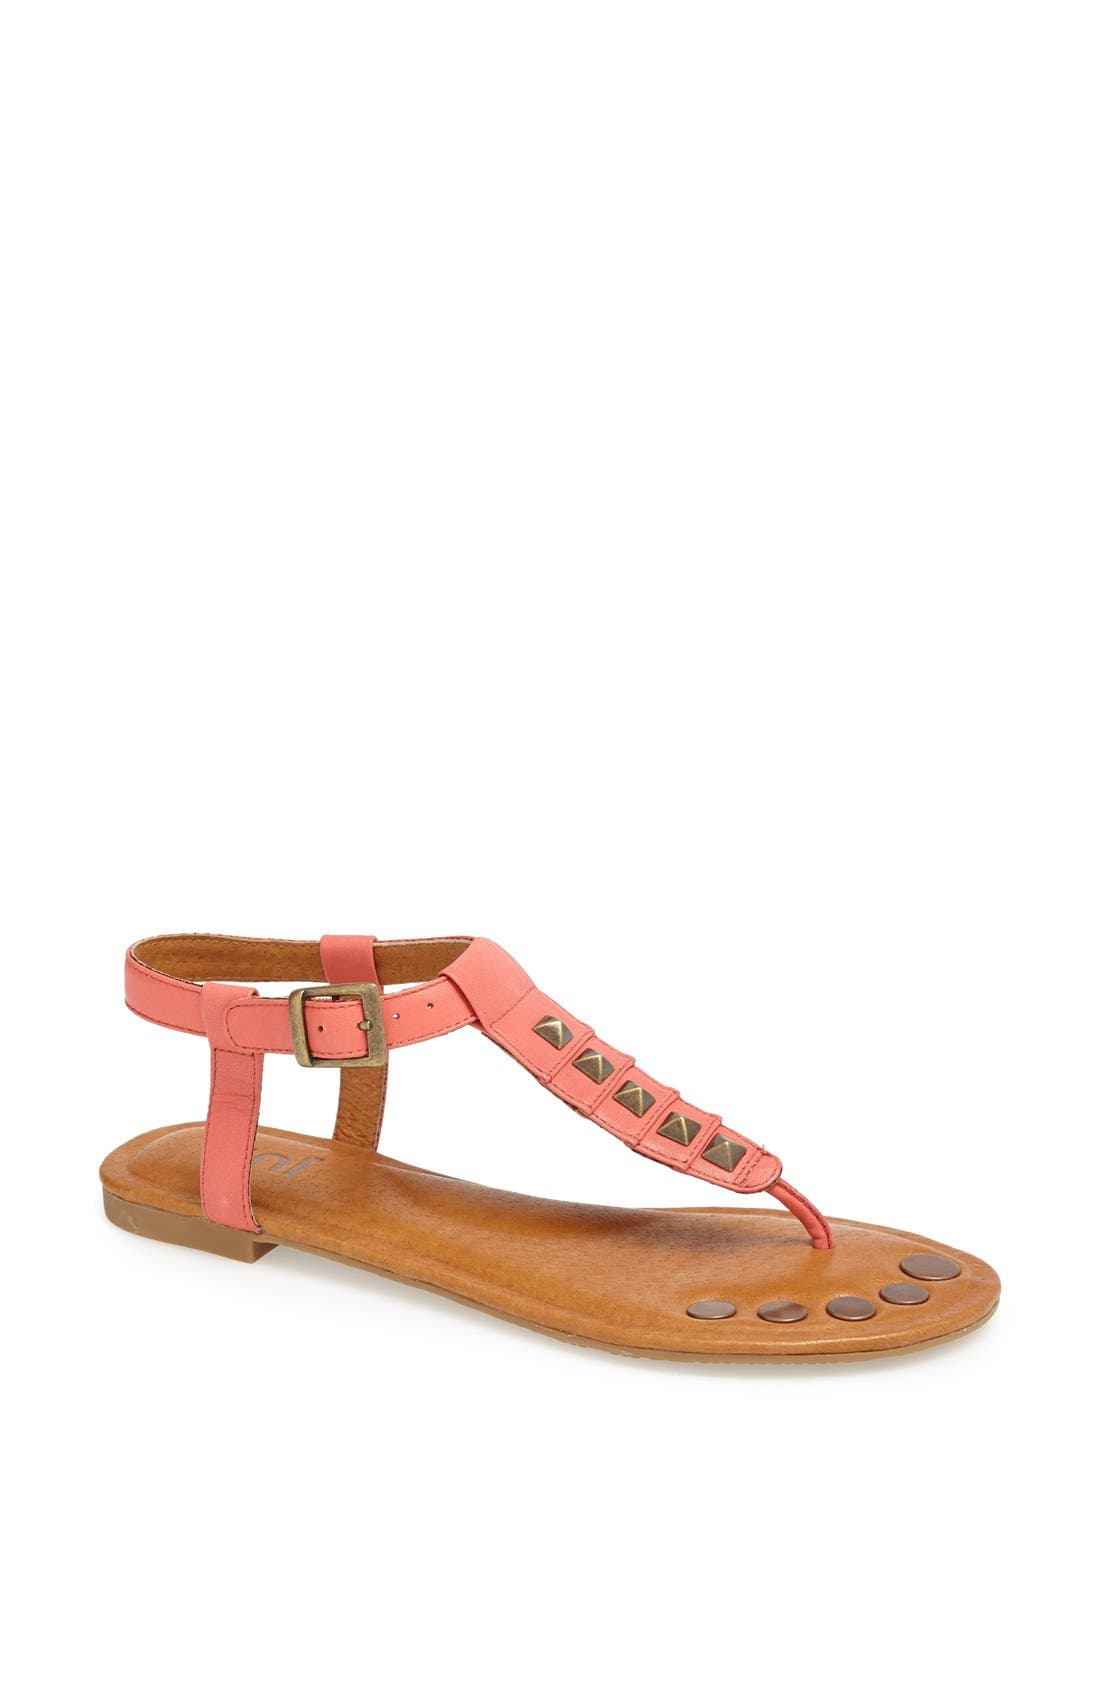 Main Image - Juil 'Kava' Grounded Leather Sandal